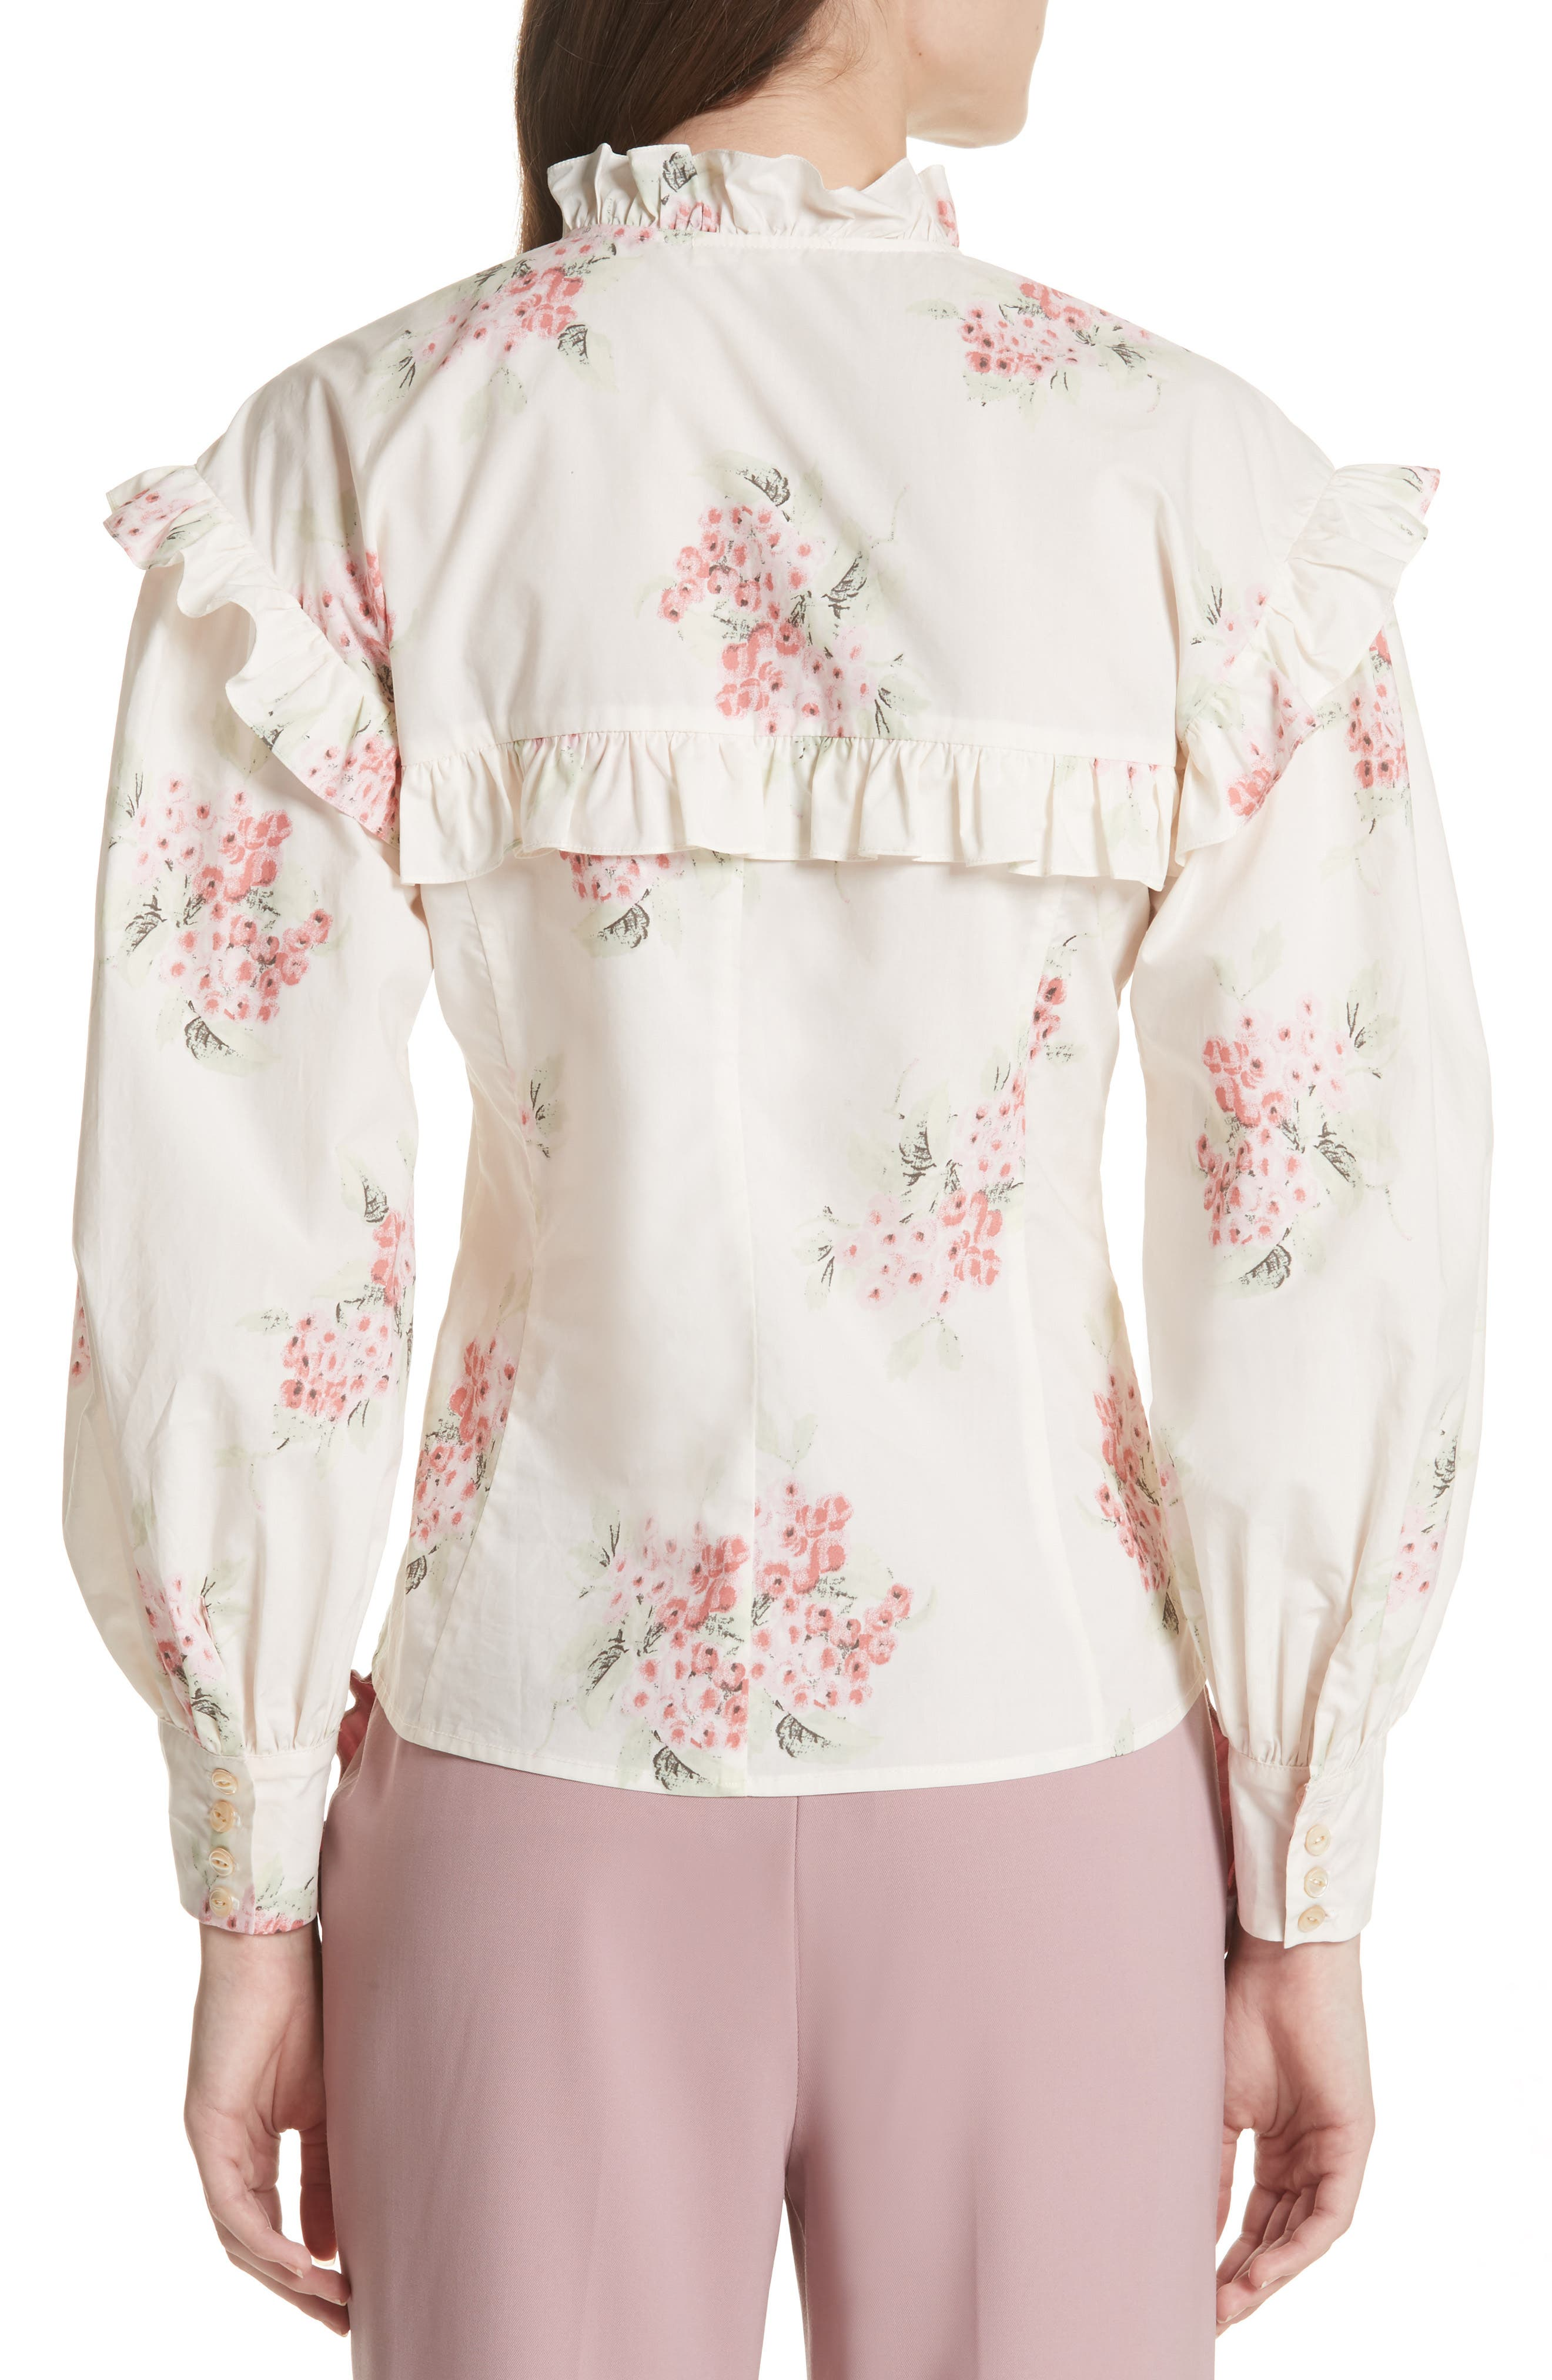 Maia Ruffled Floral Top,                             Alternate thumbnail 2, color,                             901